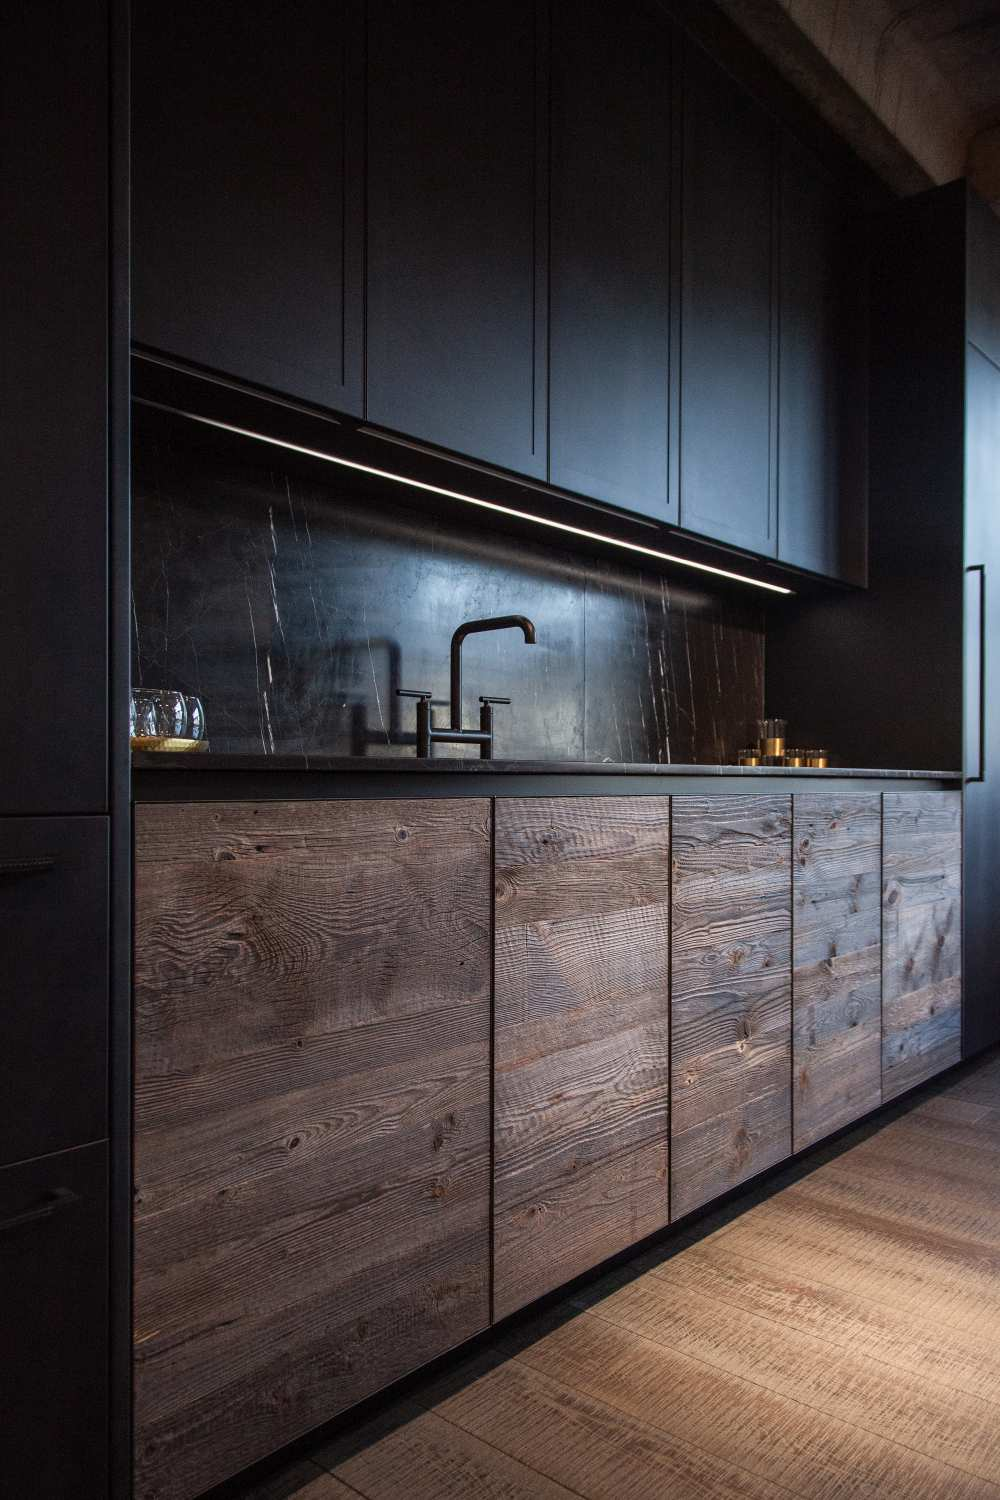 Modern kitchen design featuring black marble and unfinished wood for doors lower cabinets